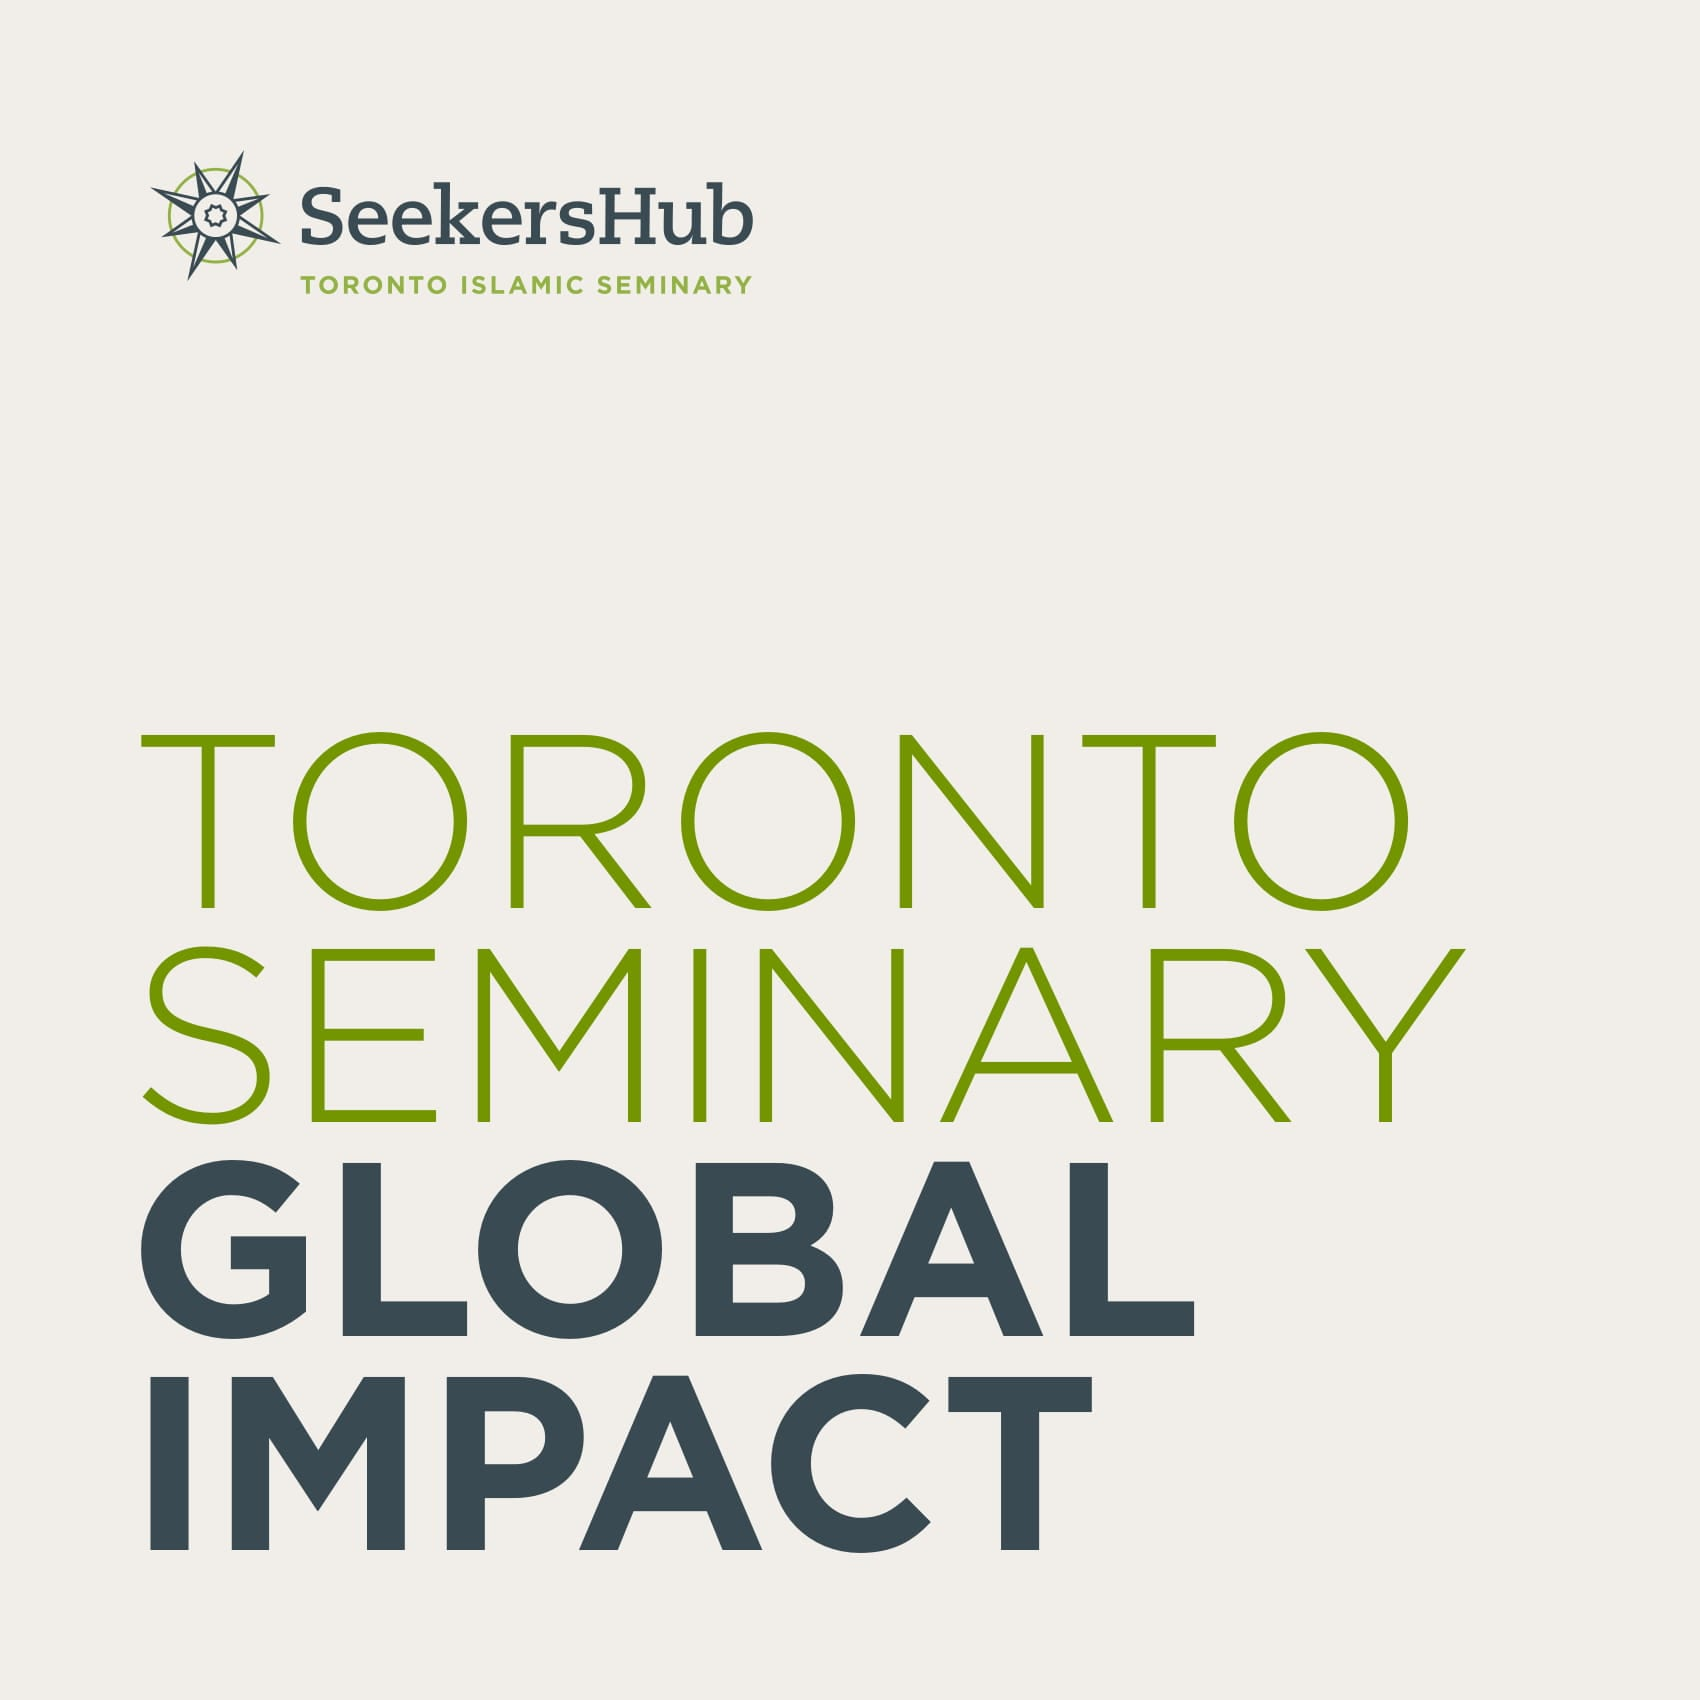 SeekersHub Global Impact Report - click to read